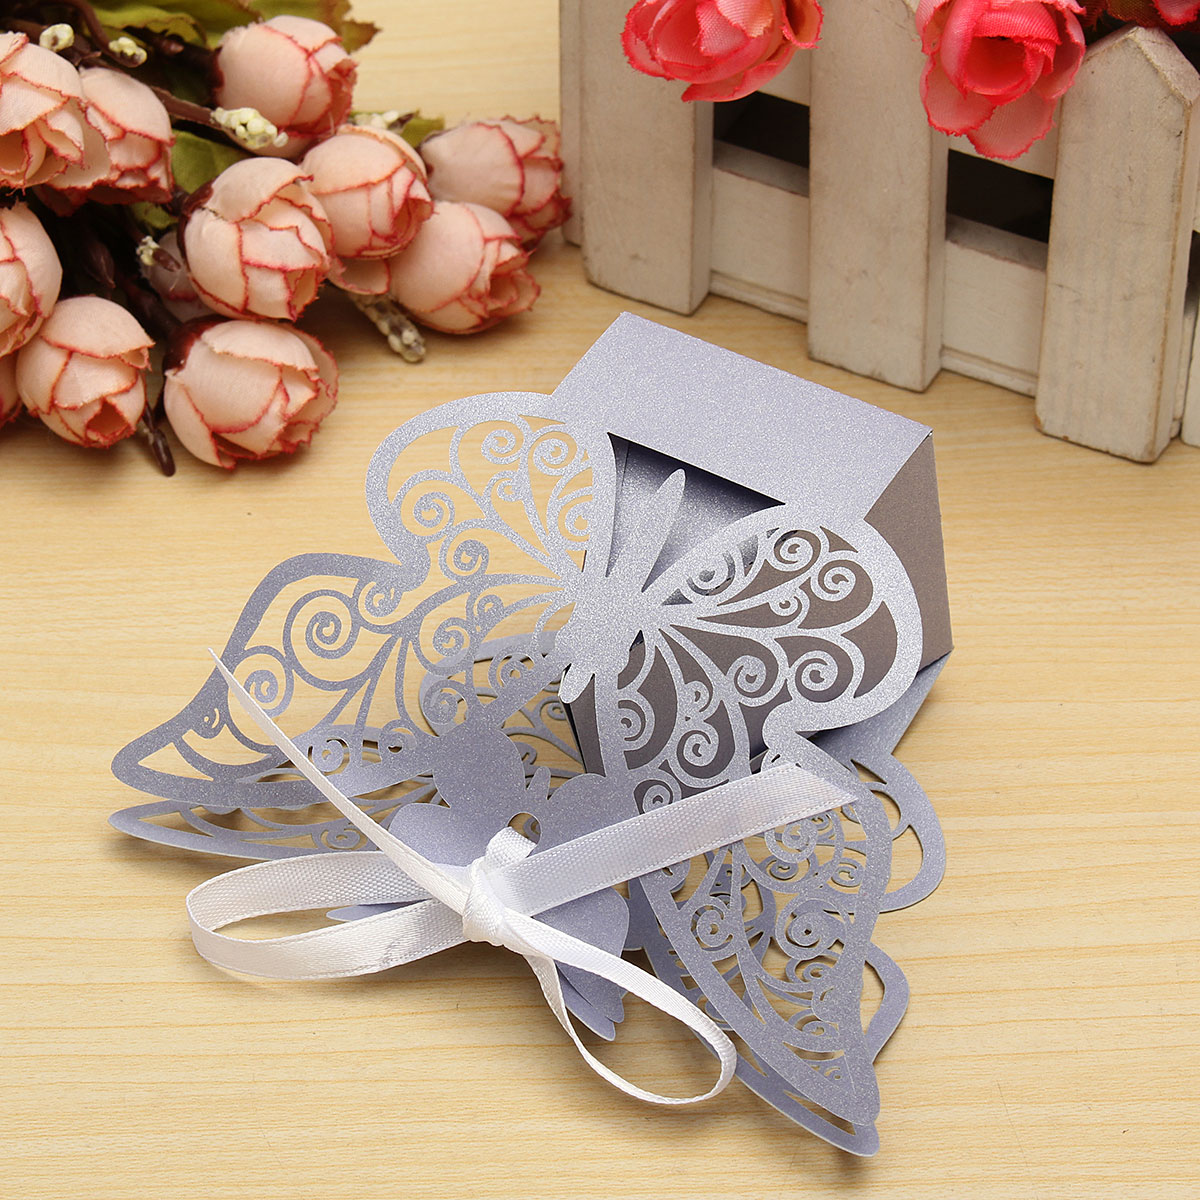 10 Pcs Butterfly Lace Hollow Out Paper Candy Boxes Wedding Favors Sweets Bags Table Decoration